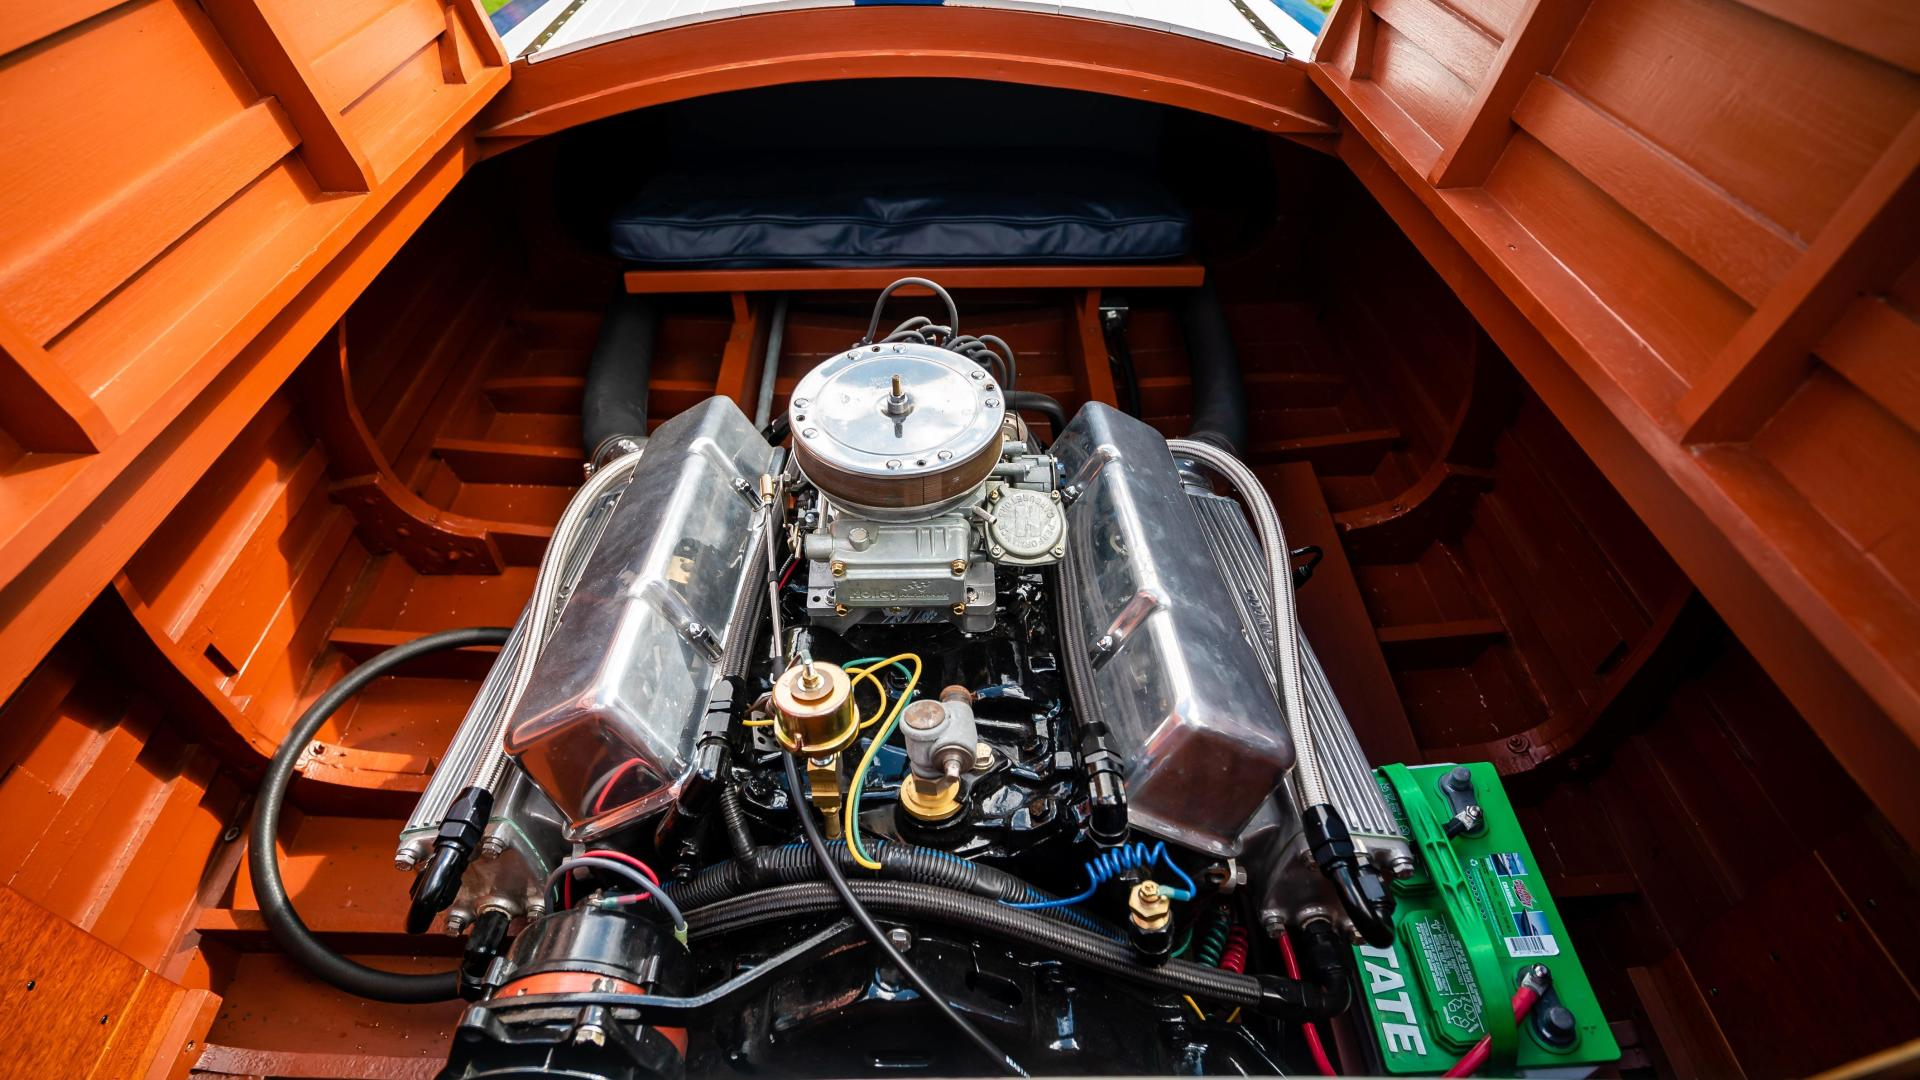 Chris-Craft-Special Race boat 1937 -Clayton-New York-United States-1546480 | Thumbnail